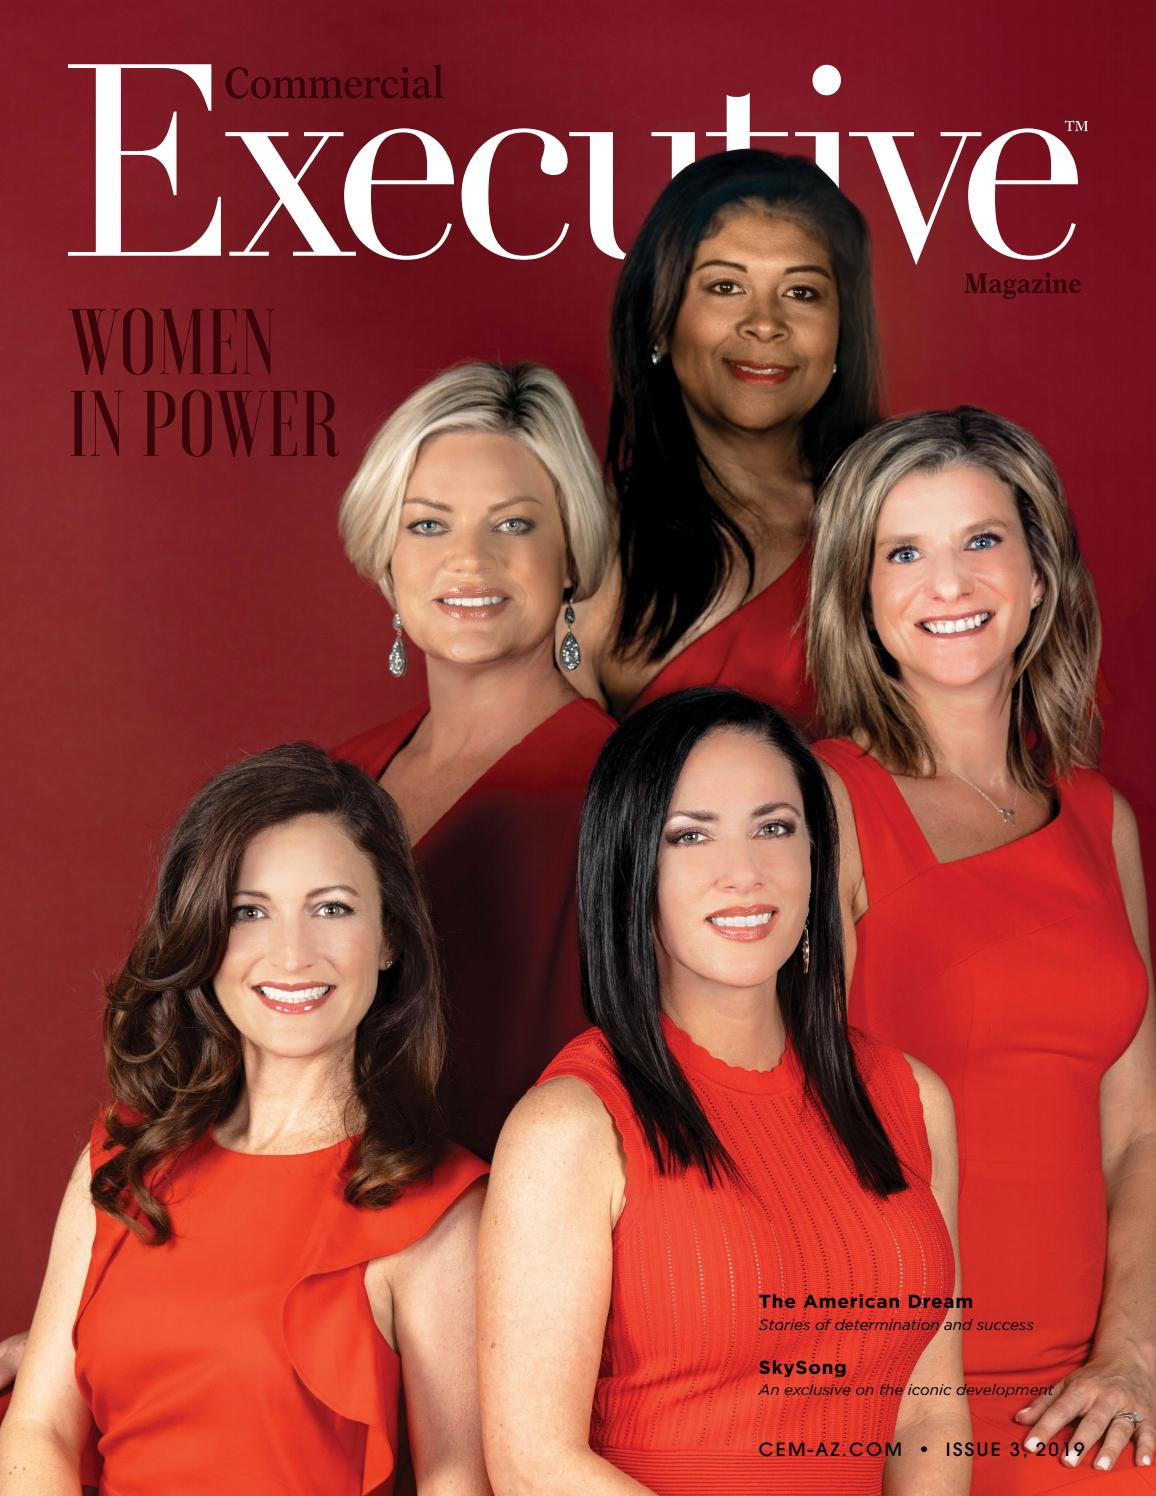 Executive Magazine's 2019 Women in Power cover featuring Caliber cofounder Jennifer Schrader